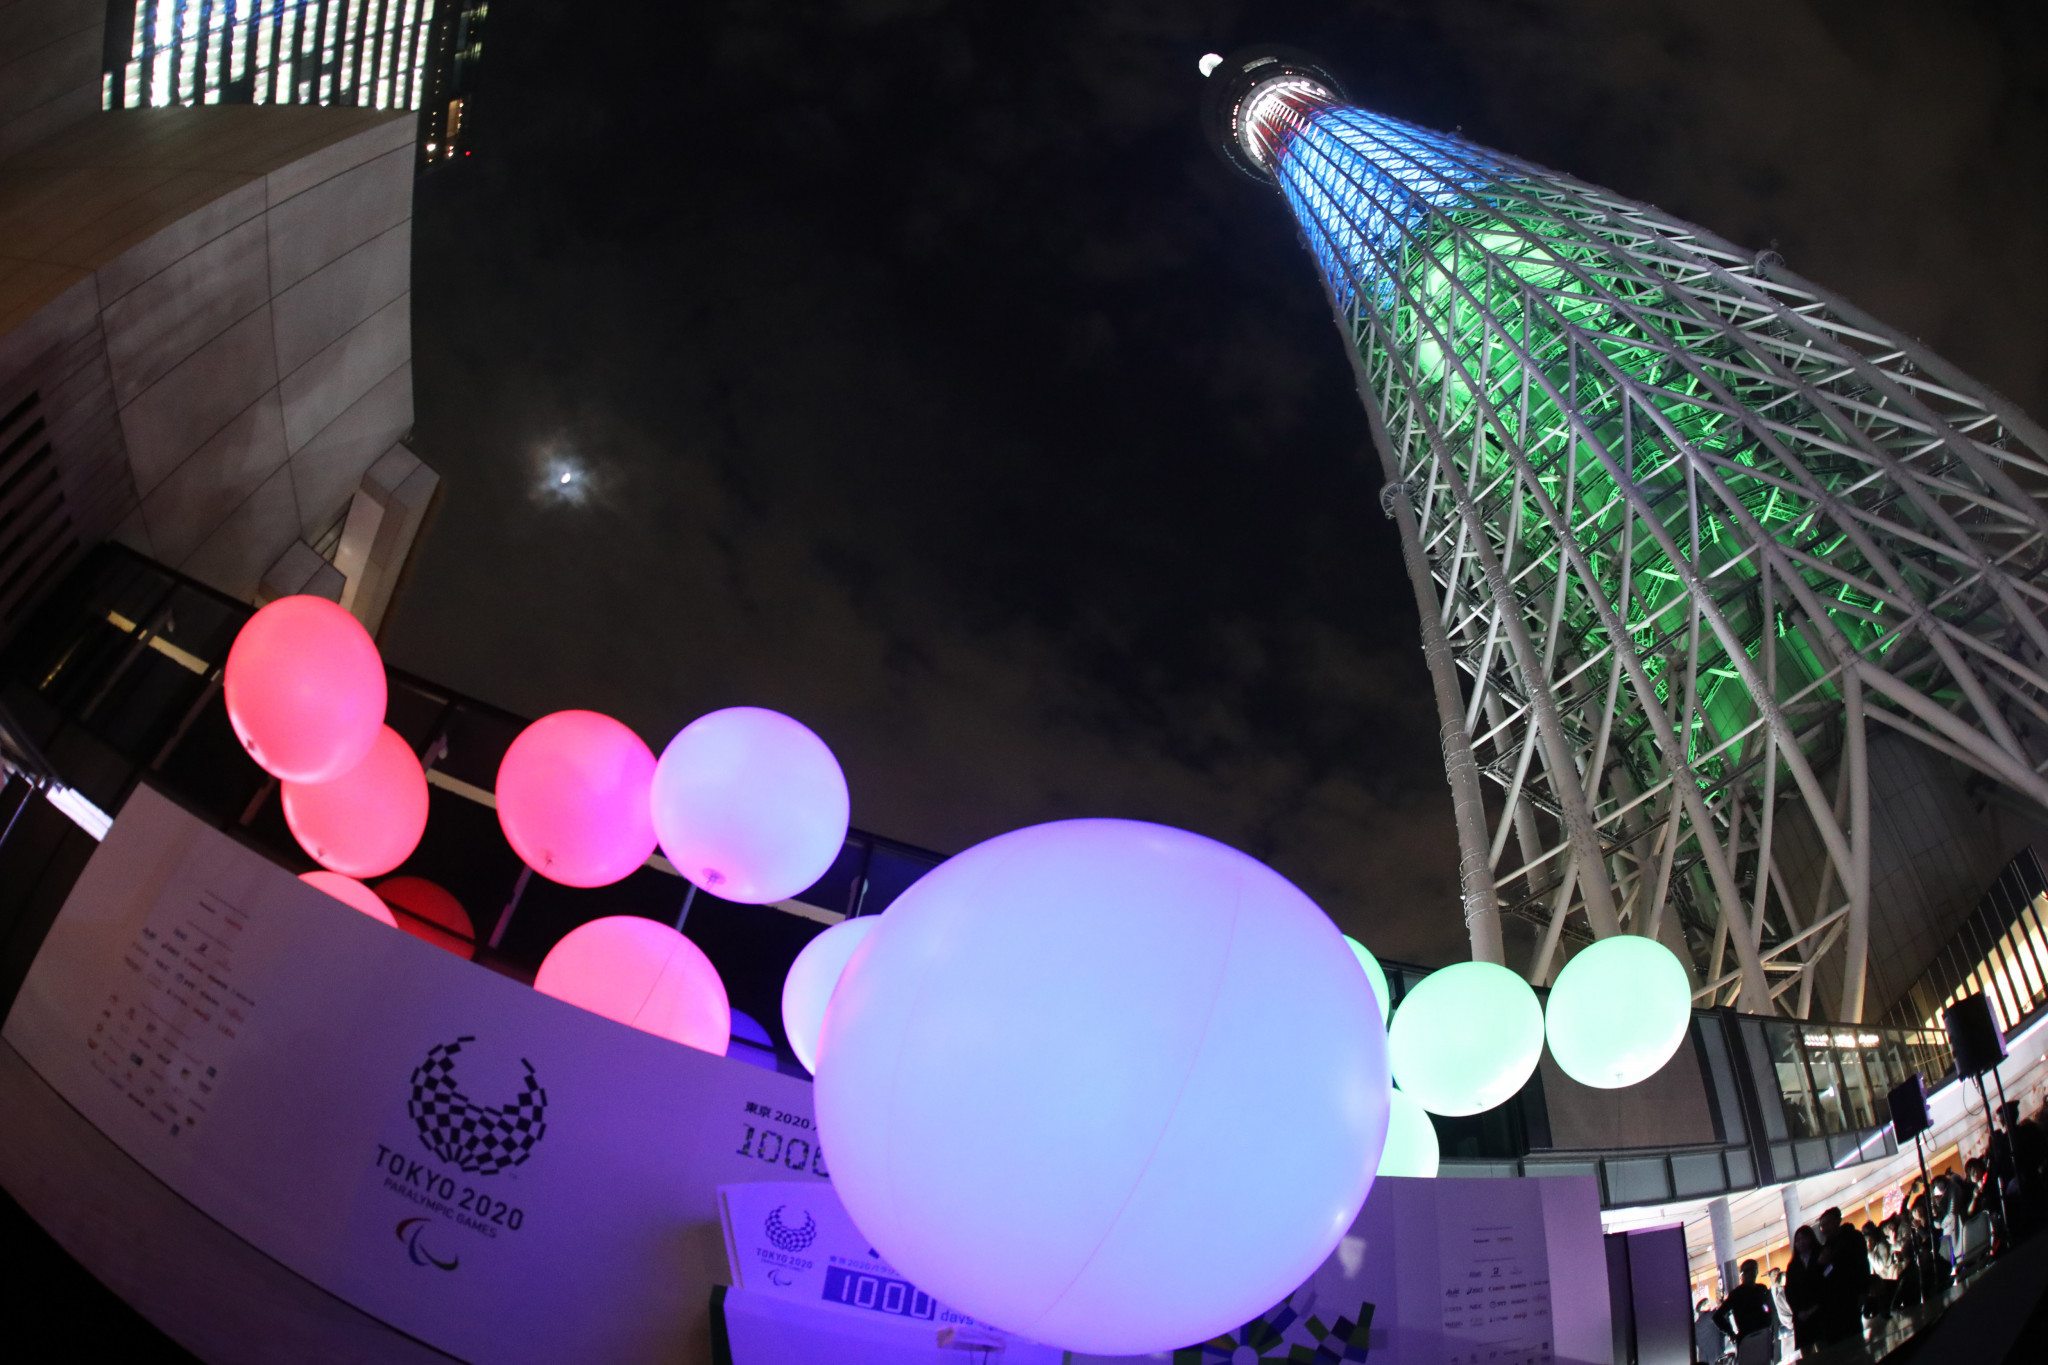 Tokyo 2020 stage event to mark 1,000 days to go to Paralympic Games